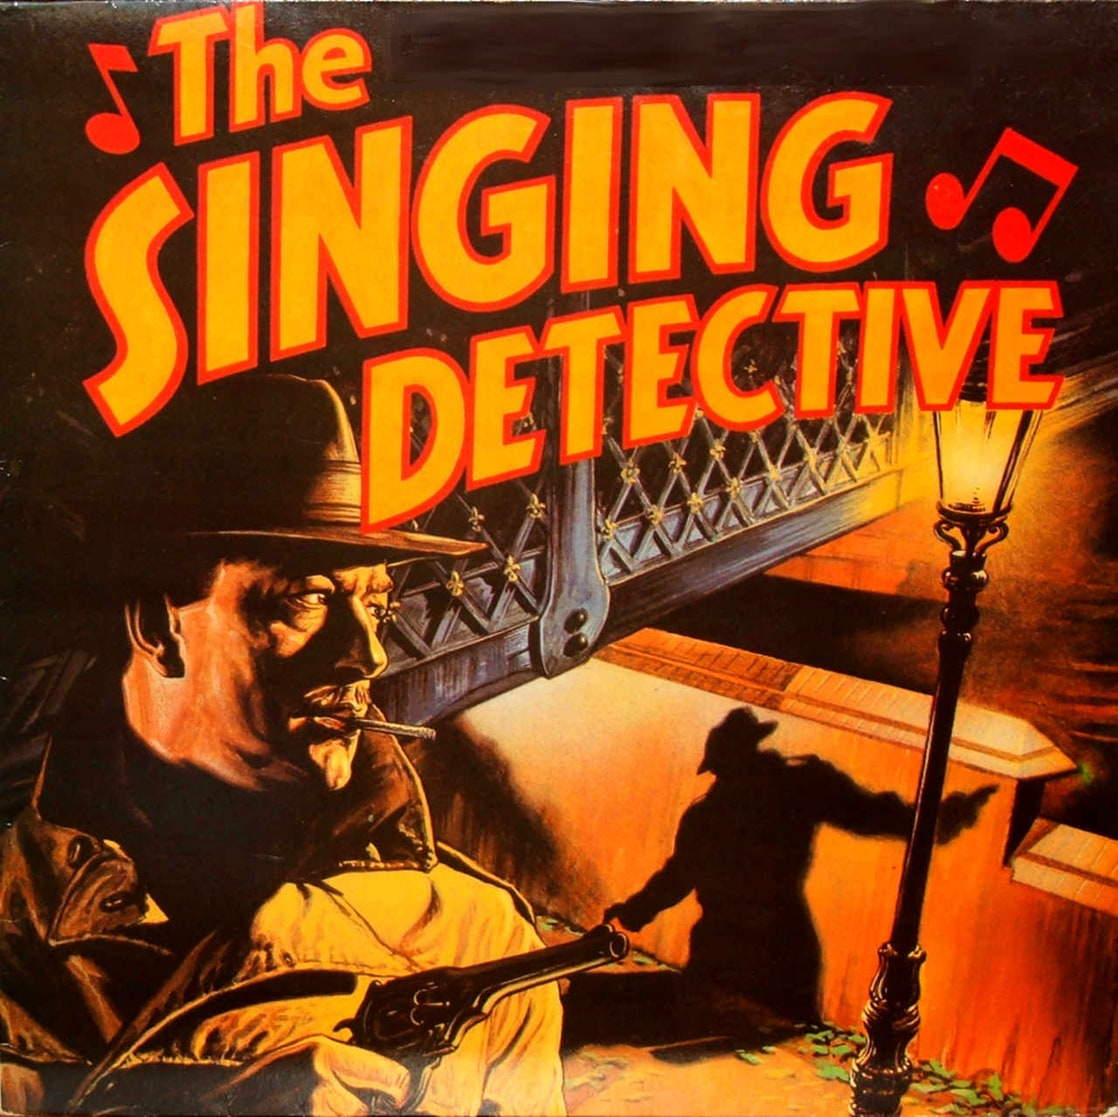 The Singing Detective                                  (1986-1986)